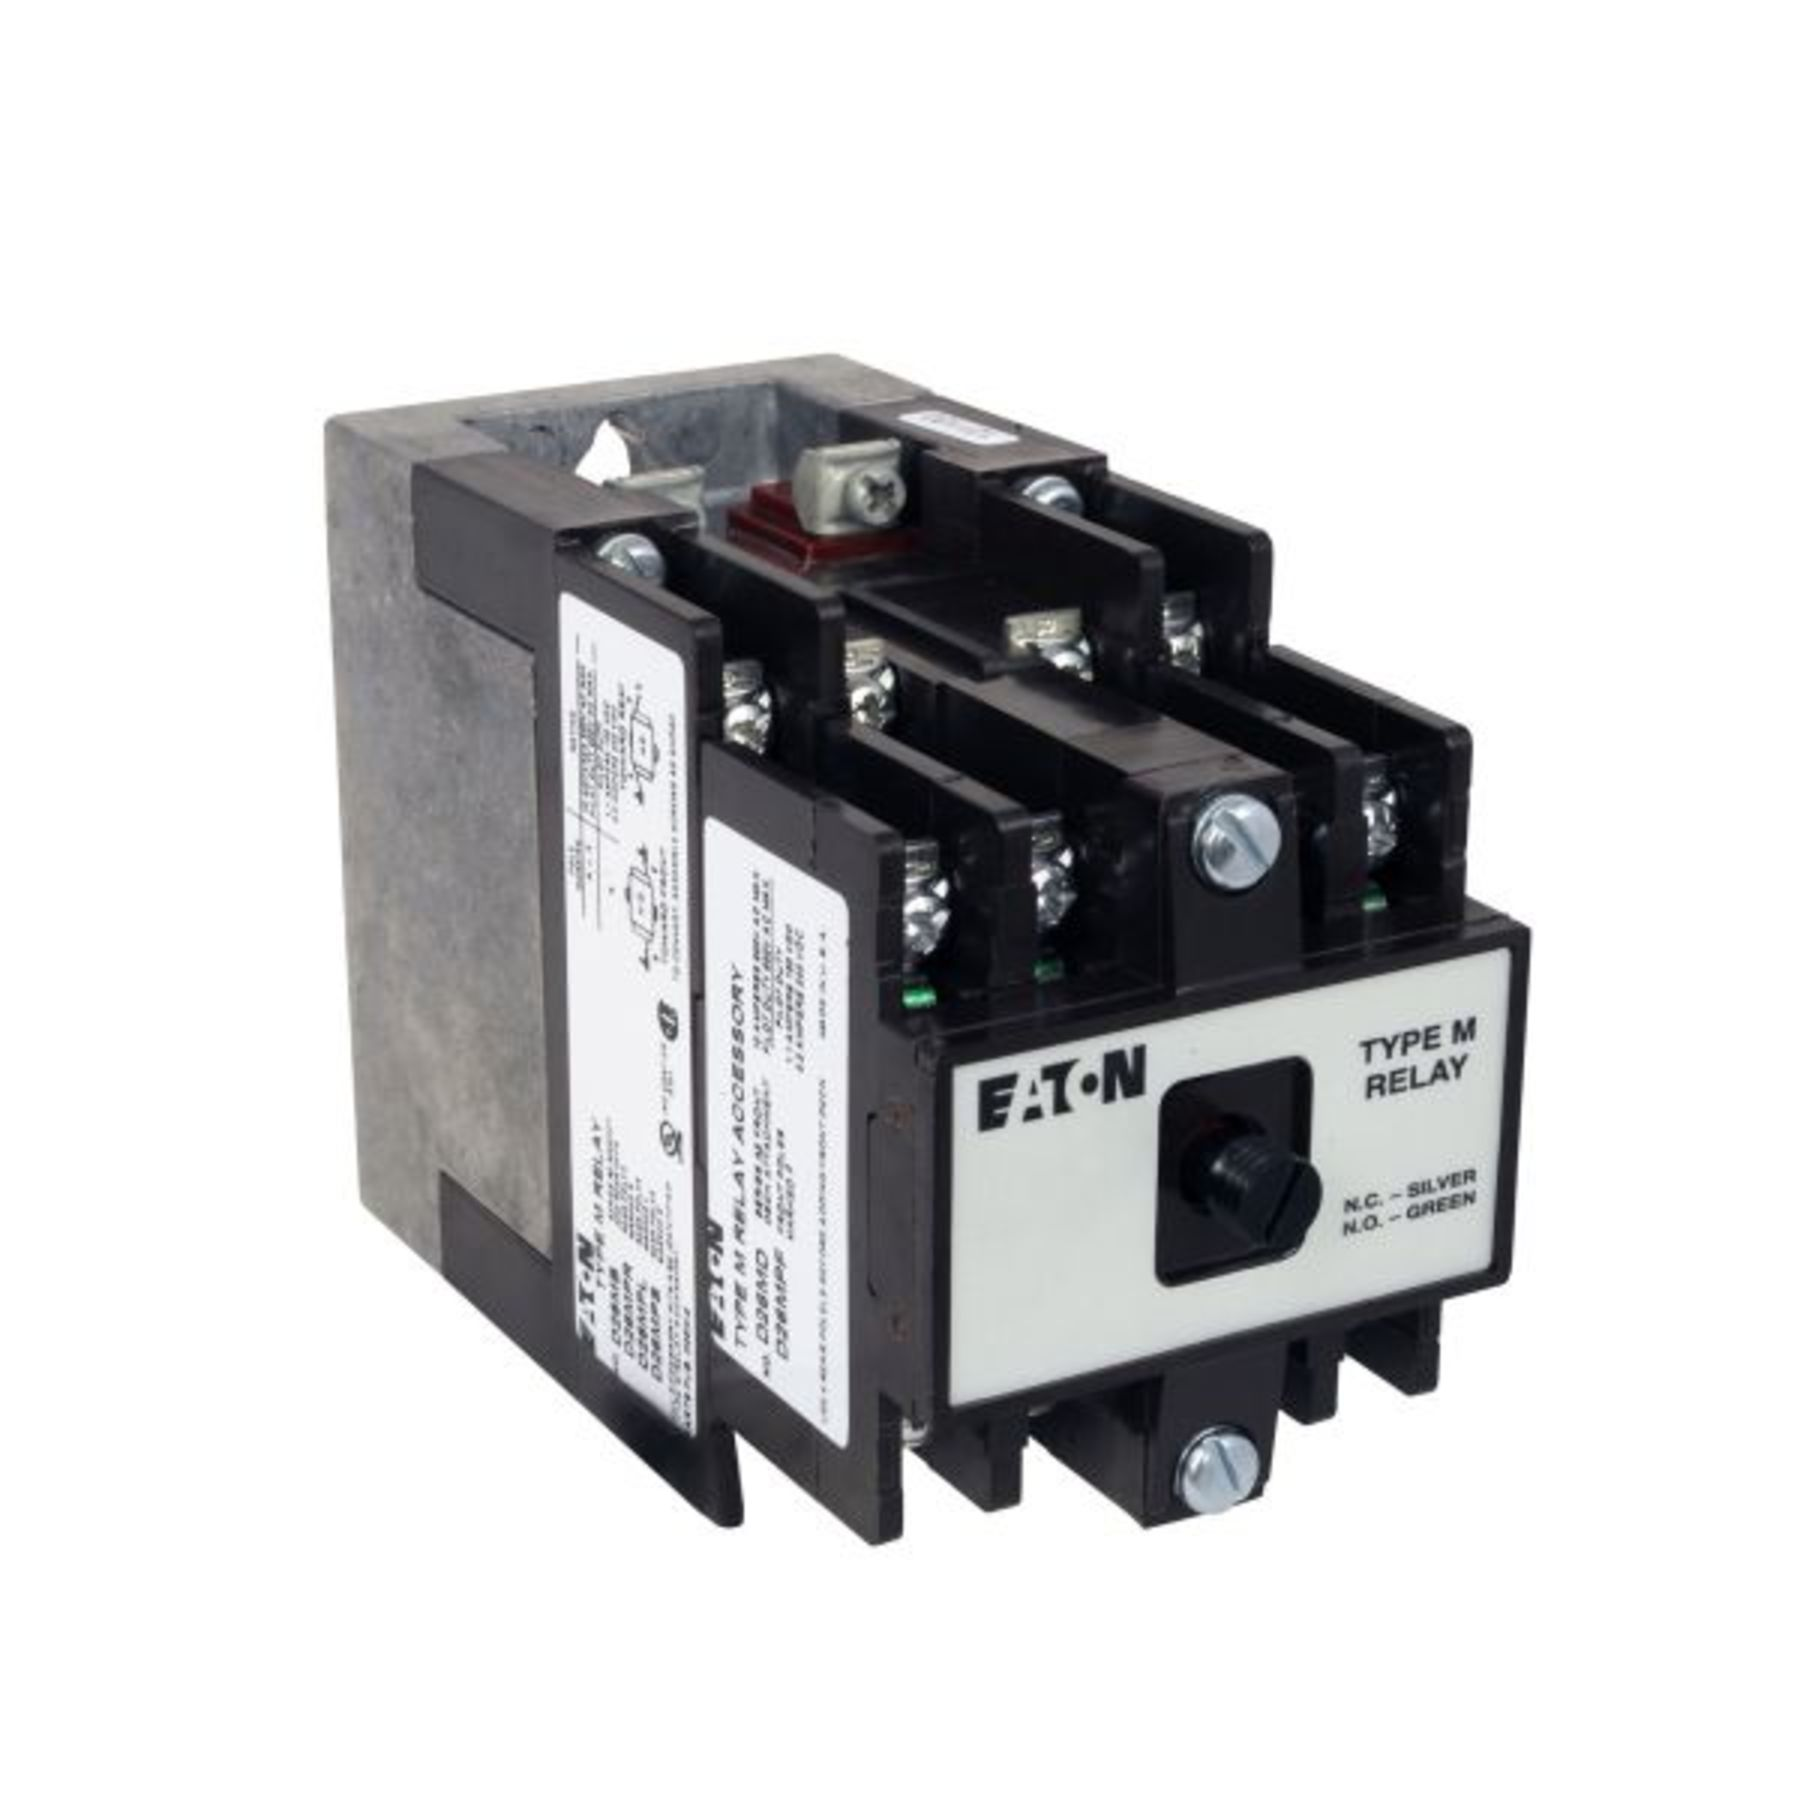 Cutler Hammer Eaton Relay 10 Amp D26mr80a Current Product Image